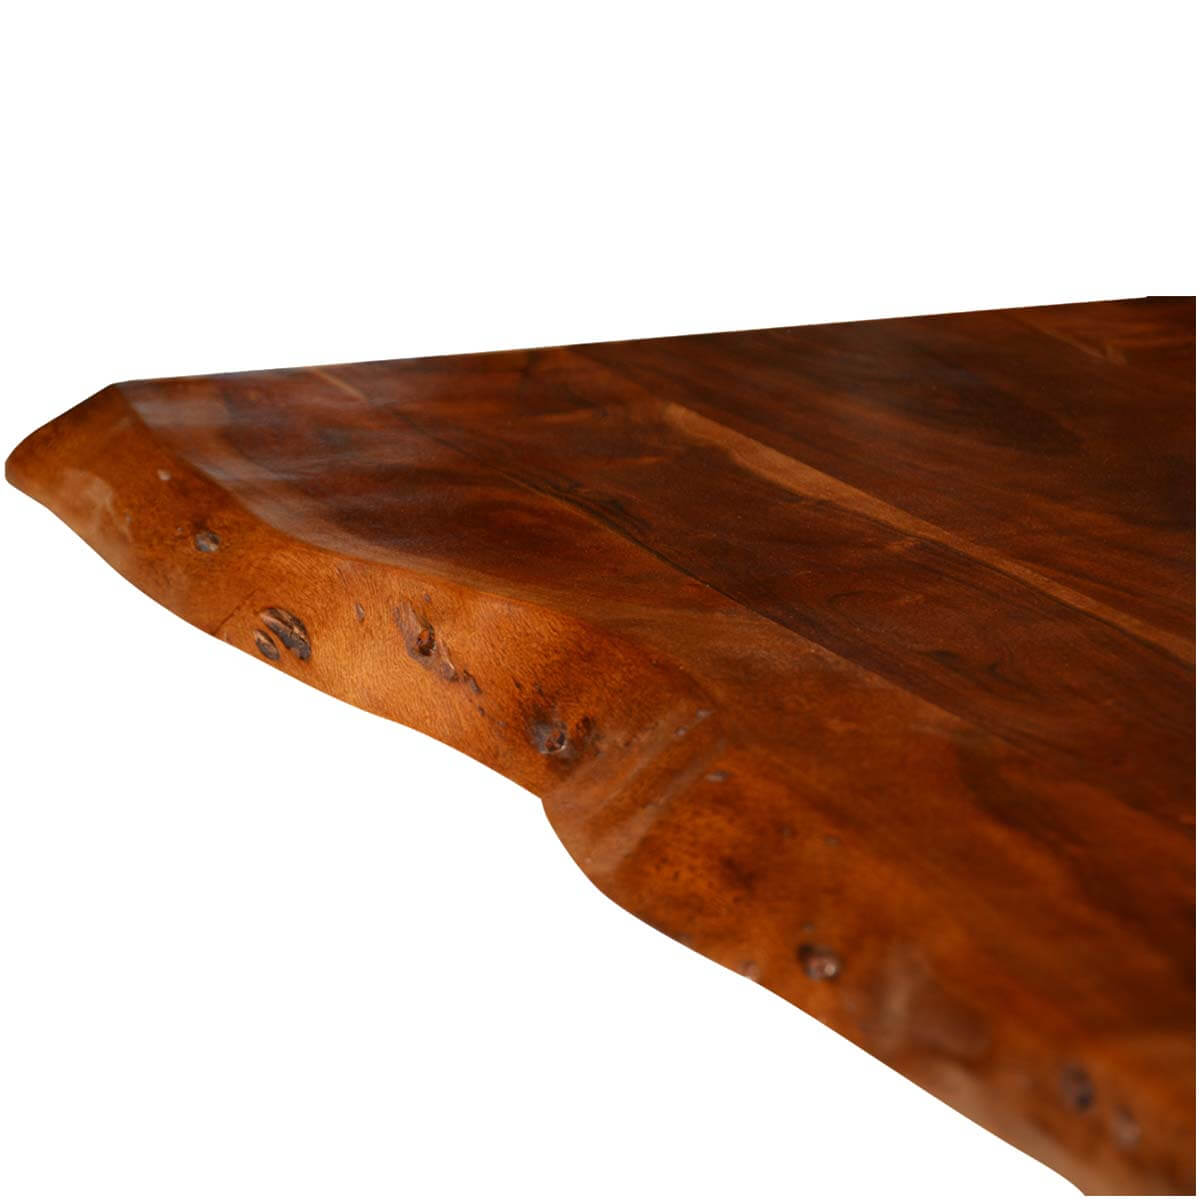 Live Edge Acacia Wood Trestle Dining Table : 73914 from www.sierralivingconcepts.com size 1200 x 1200 jpeg 77kB